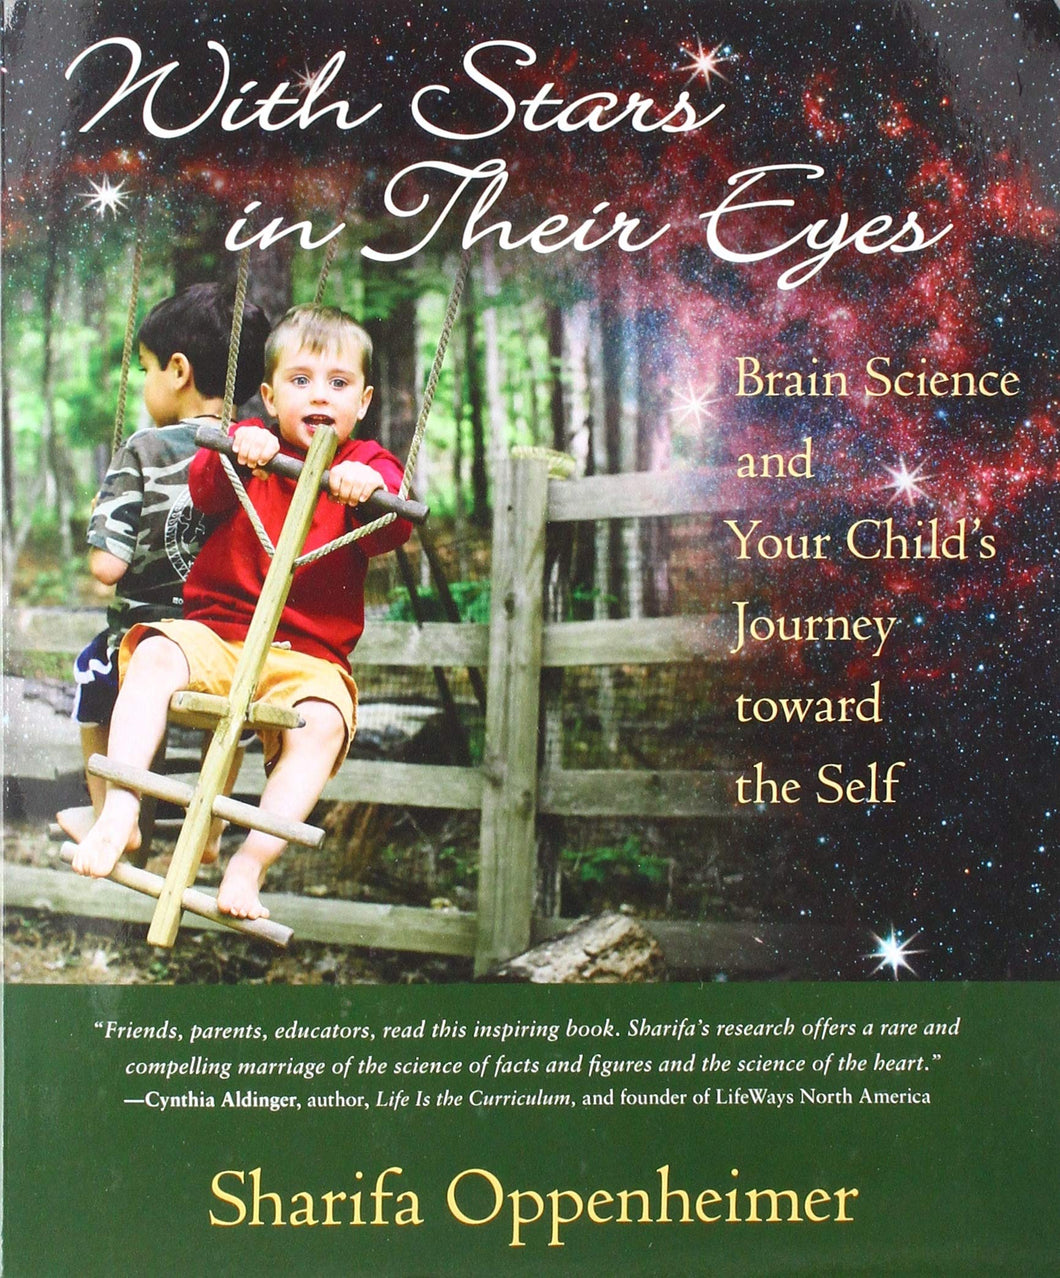 <i>With Stars in Their Eyes: Brain Science and Your Child's Journey toward the Self</i> by Sharifa Oppenheimer